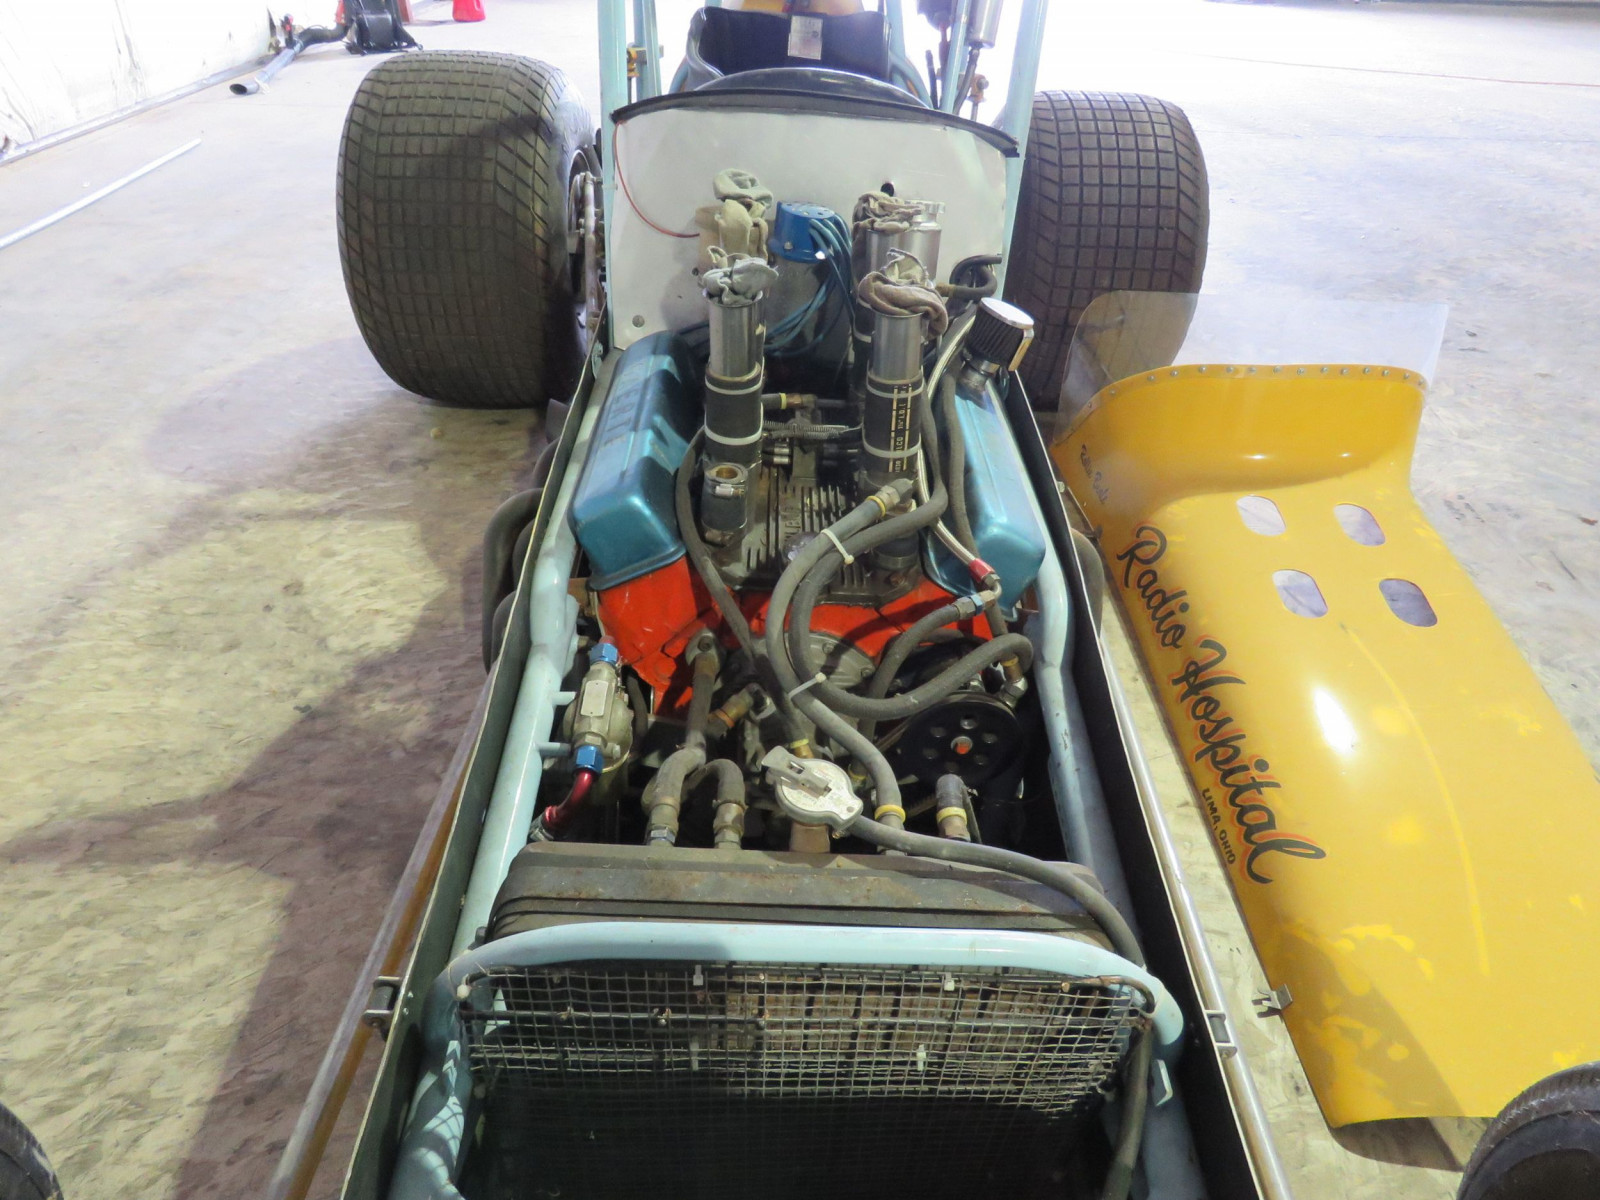 1972 fuel Injected Midget Race Car - Image 11